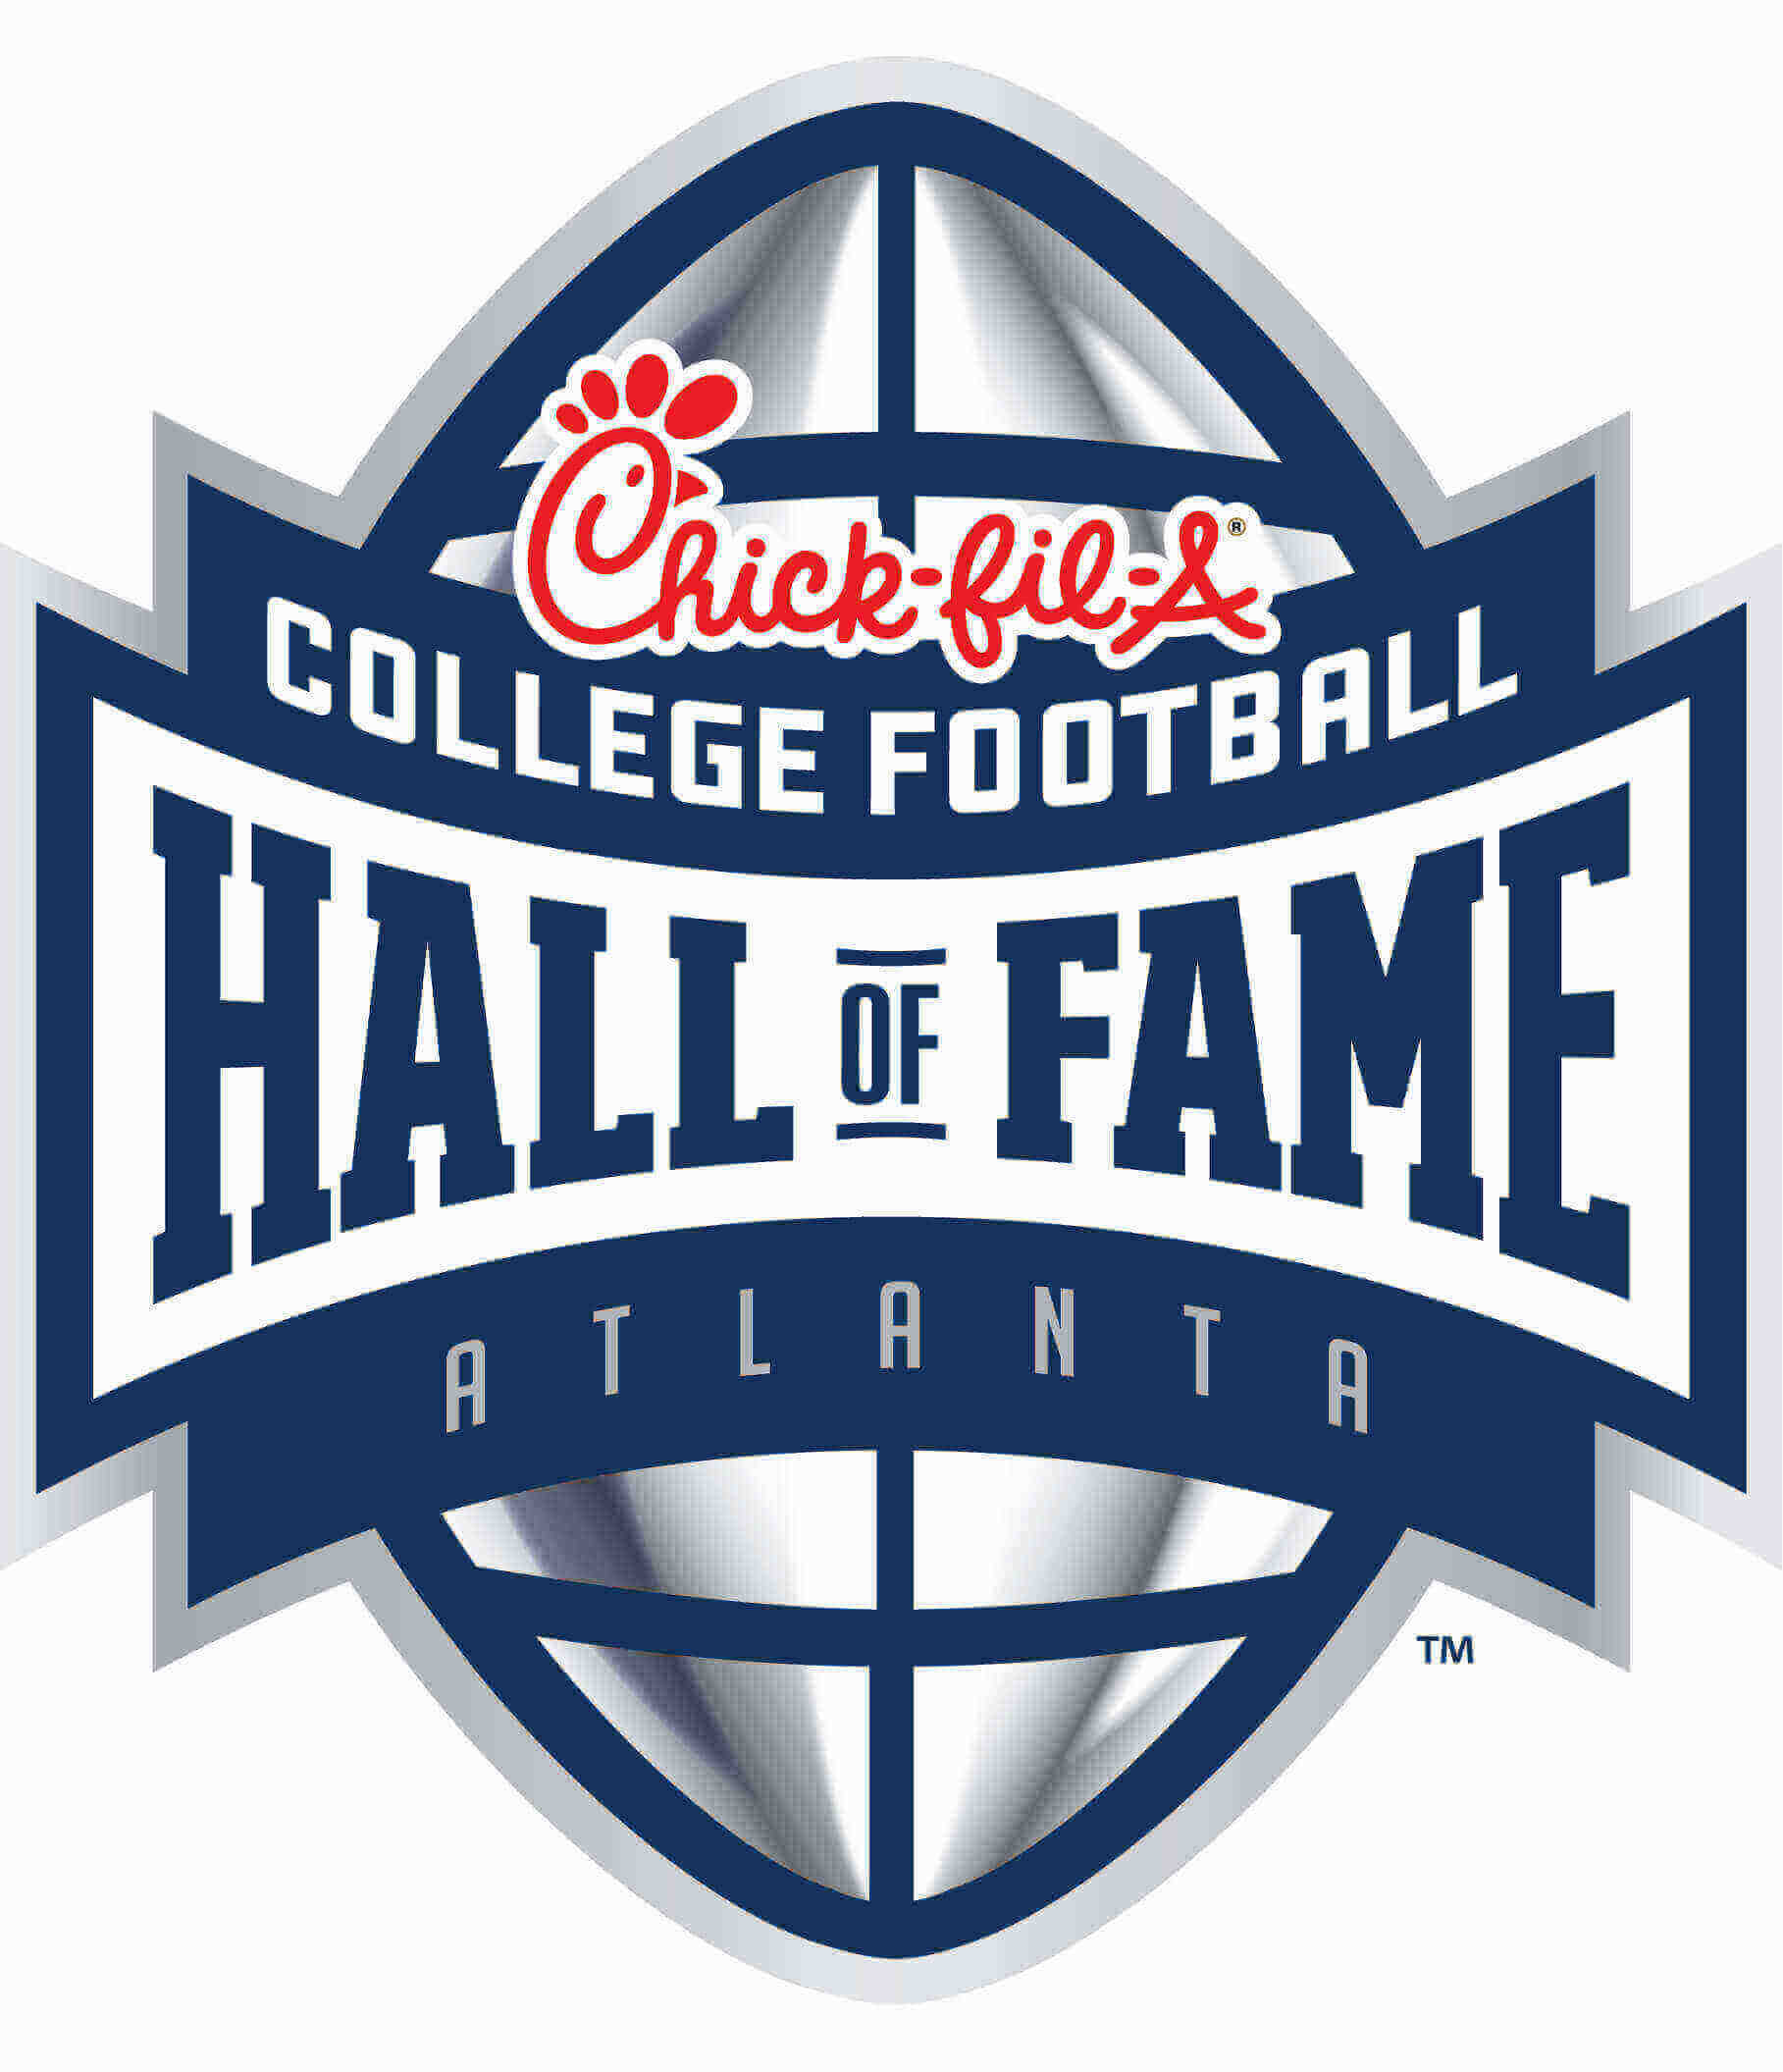 Chick-fil-A Renews Support - Now Title Sponsor of the College Football Hall of Fame